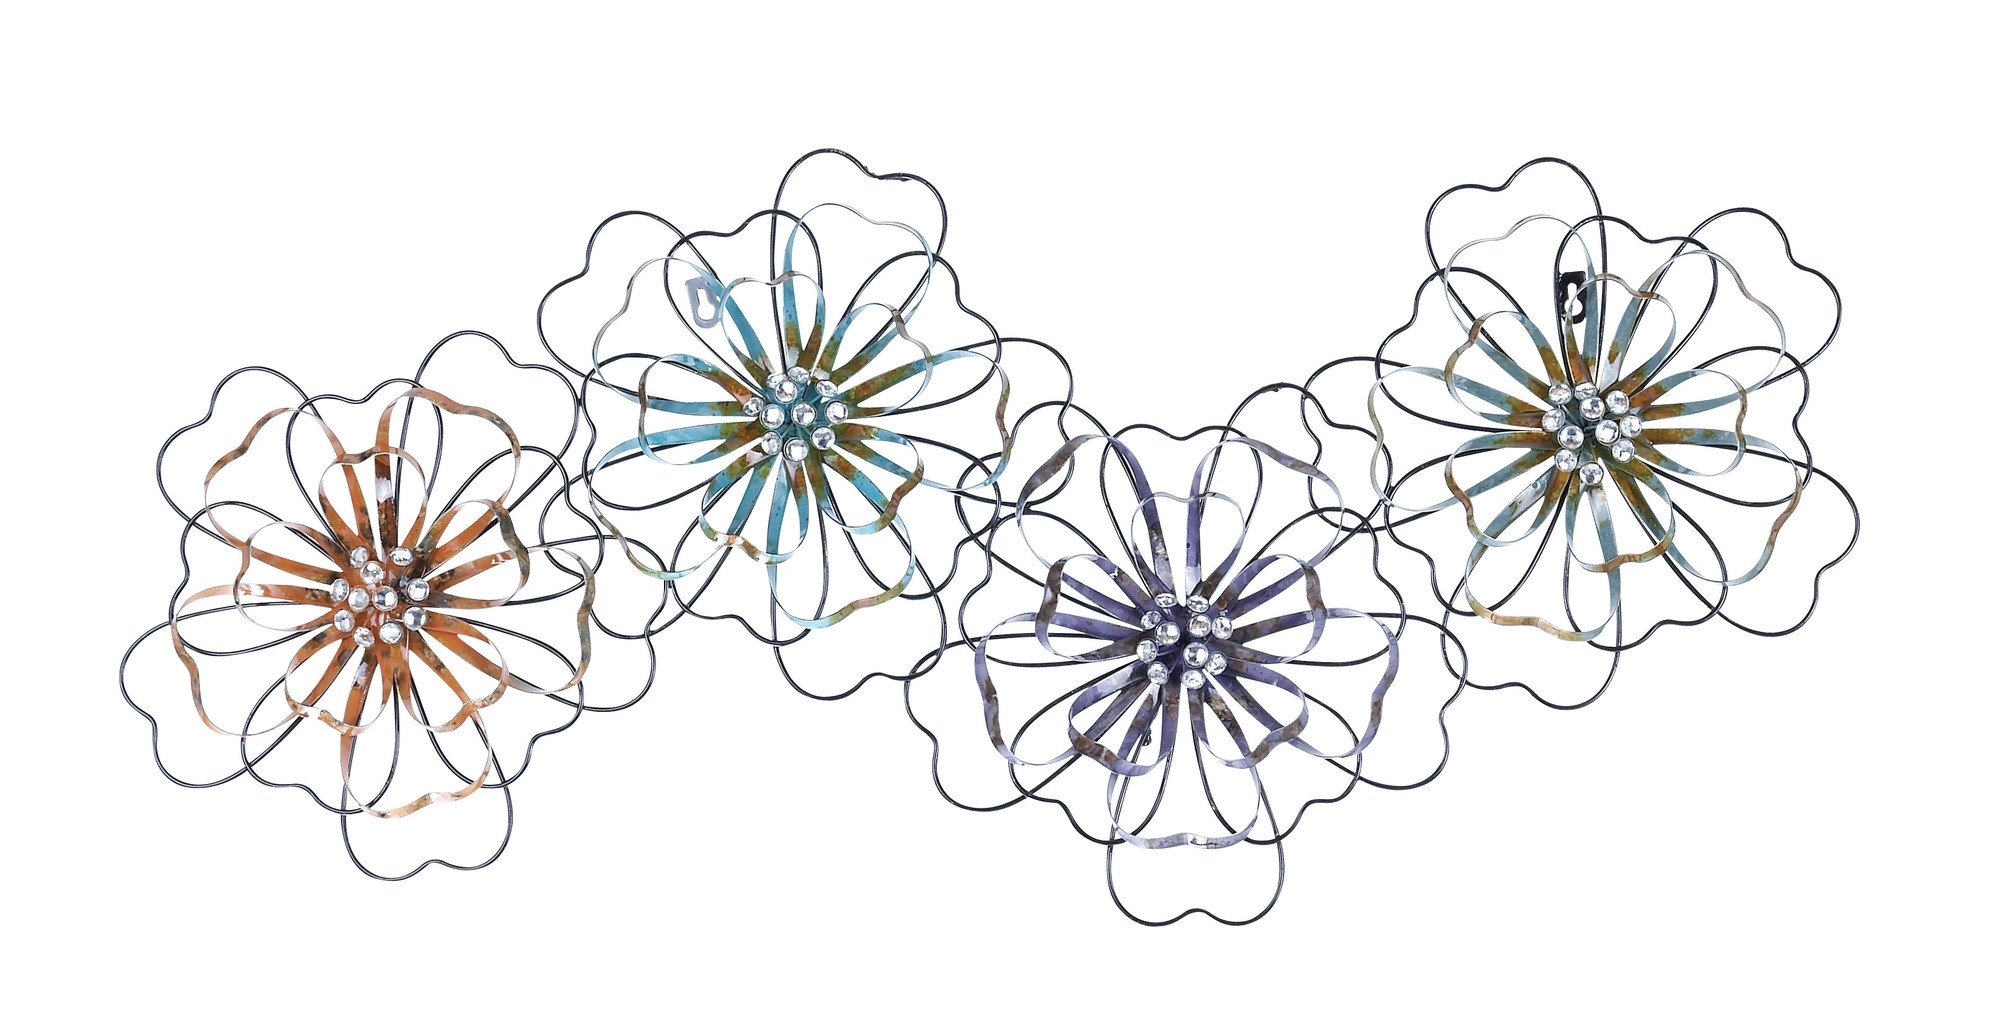 Intermingled Flowers – Floral Metal Wall Art Within Current Metal Flowers Wall Art (View 5 of 20)